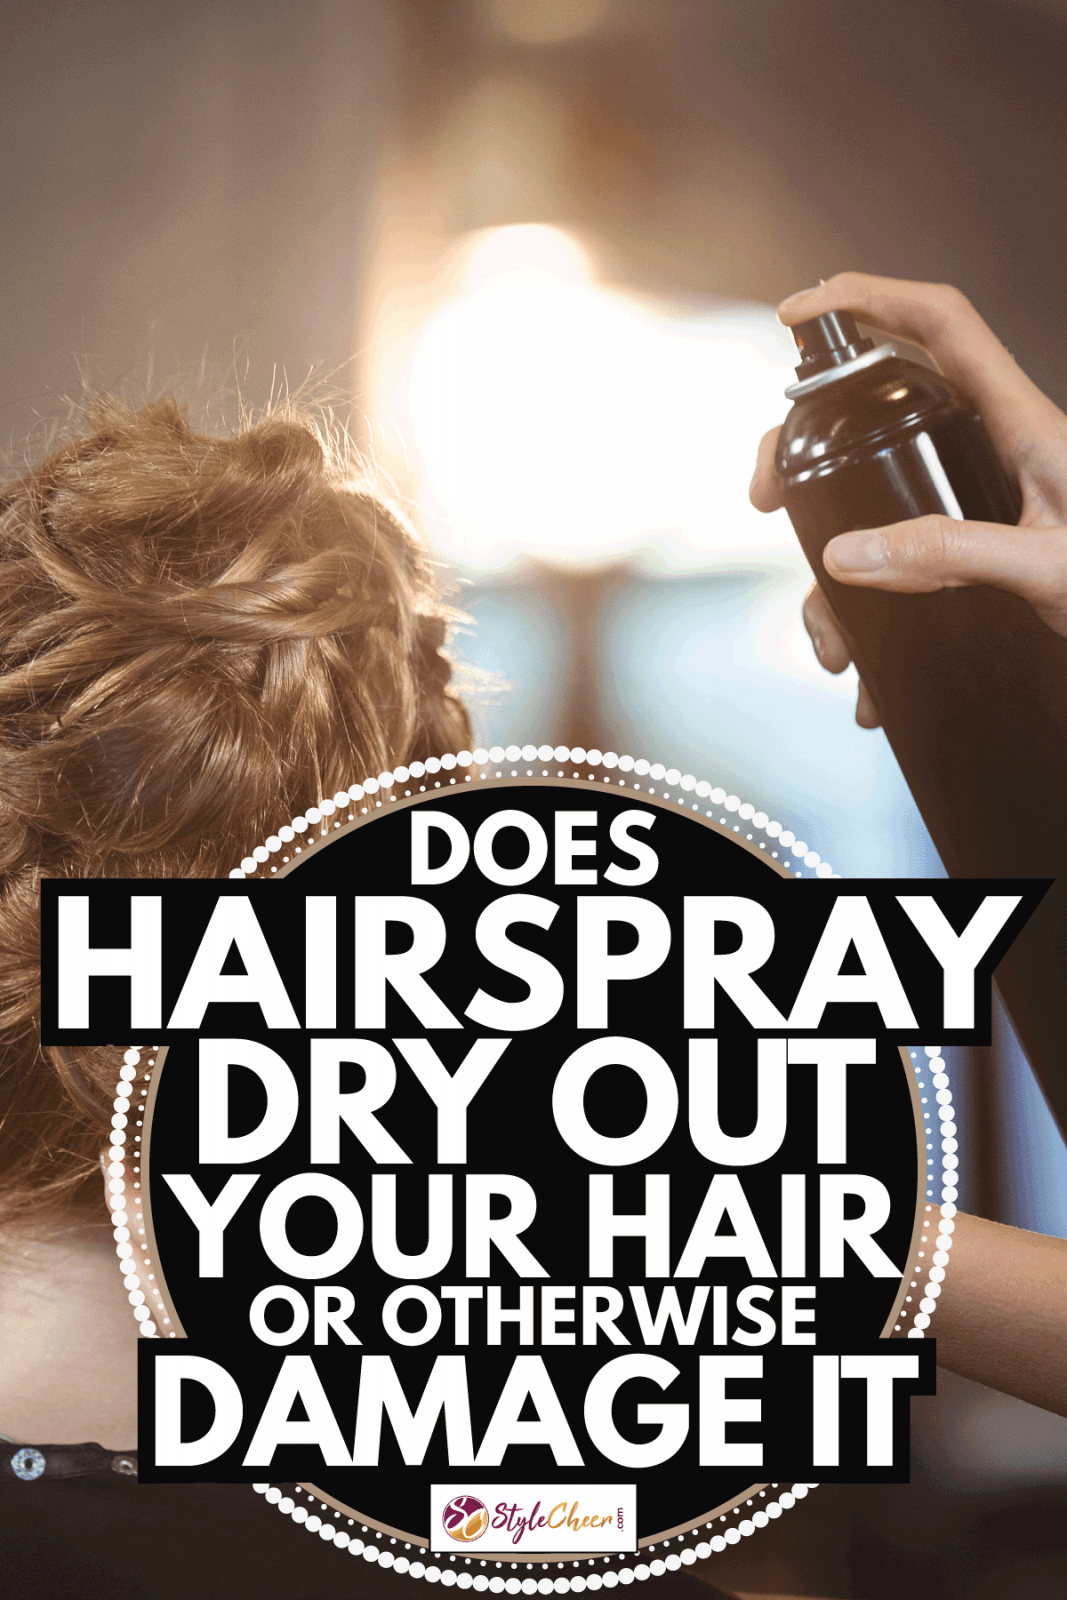 Female hairdresser styling customers hair using hairspray. Does Hairspray Dry Out Your Hair Or Otherwise Damage It